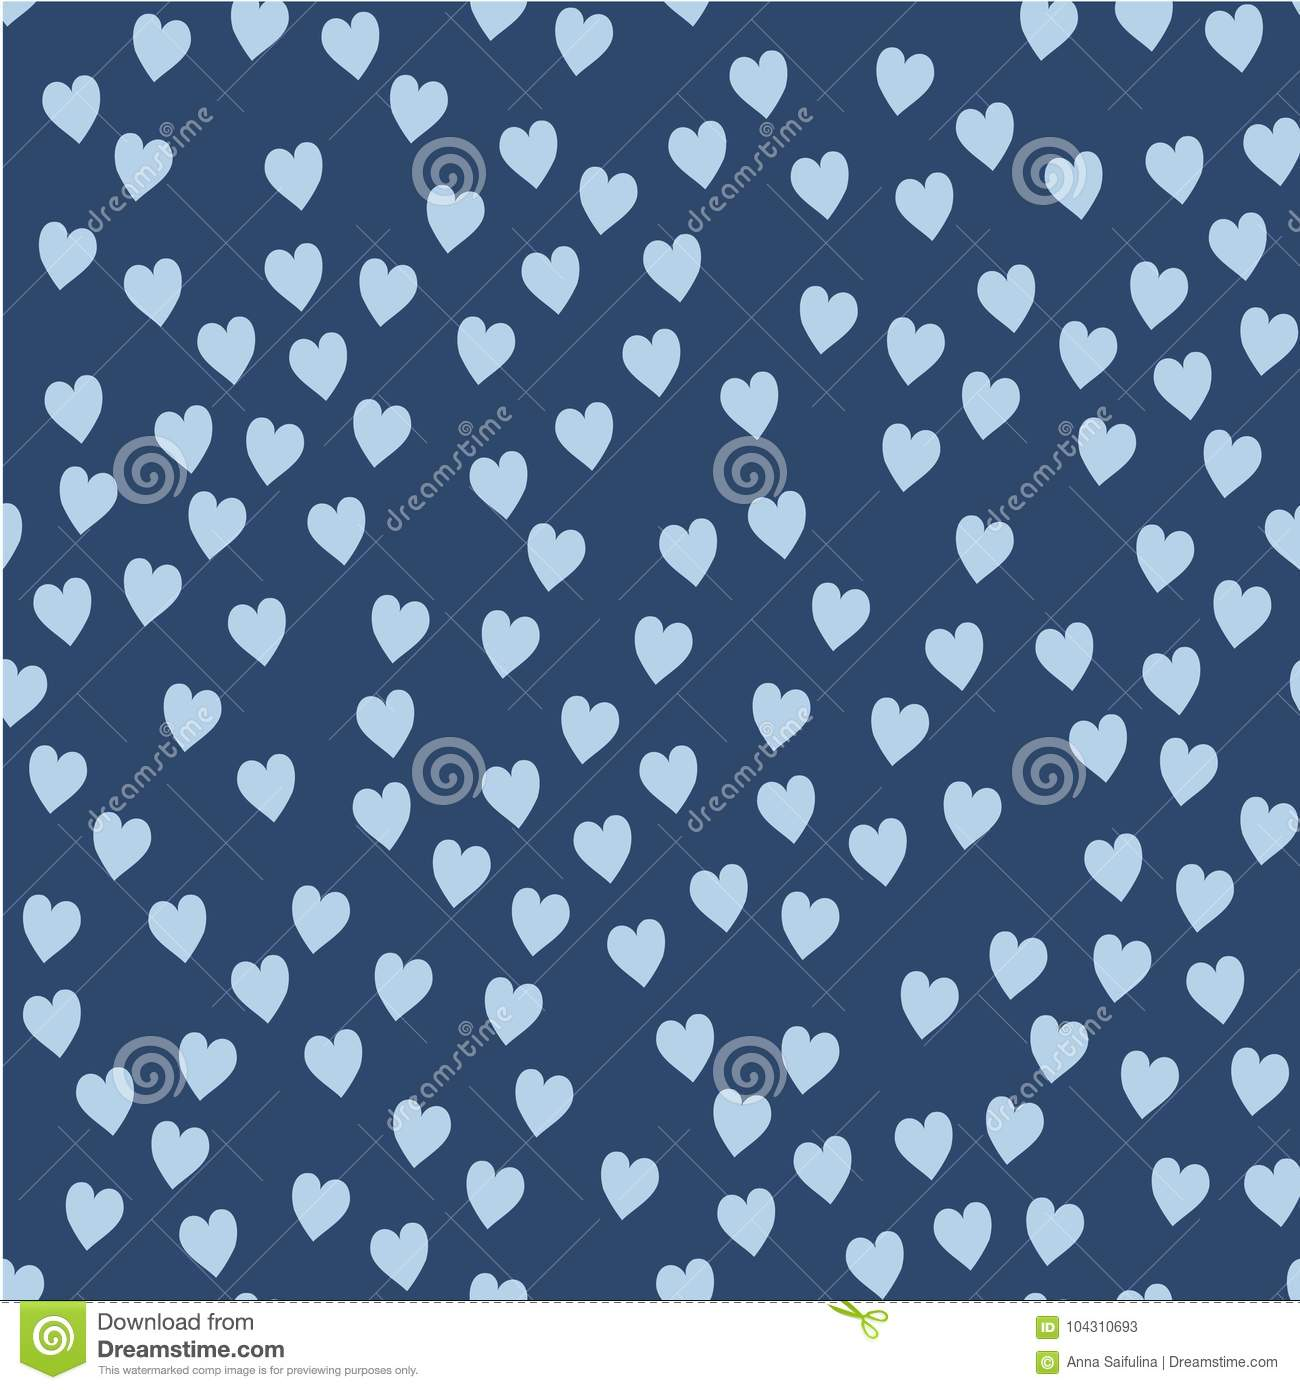 Vector seamless pattern. Randomly disposed hearts. Cute background for print on fabric, paper, scrapbooking